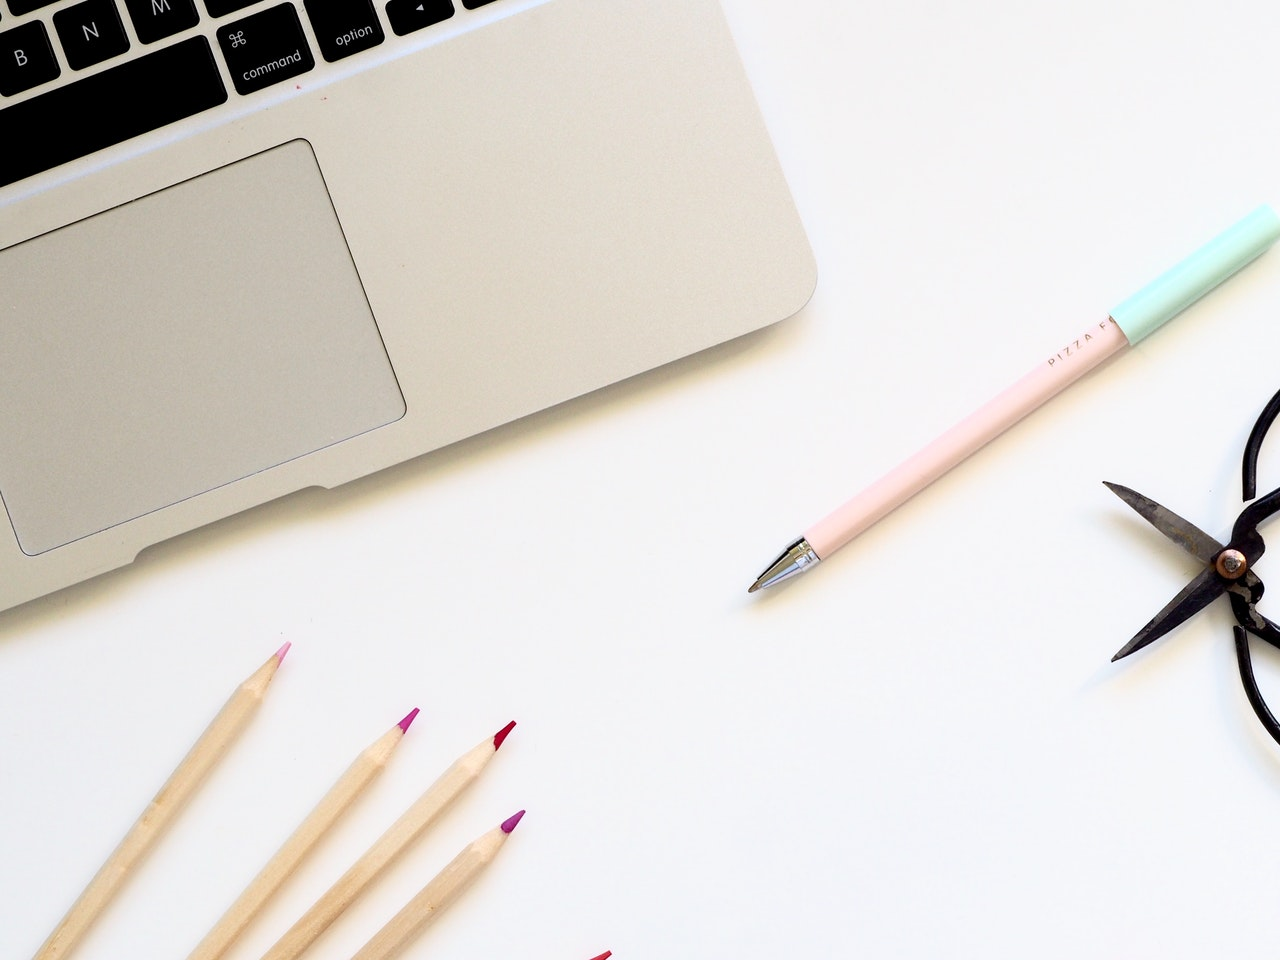 macbook-pro-and-pink-pen-on-table-1007026